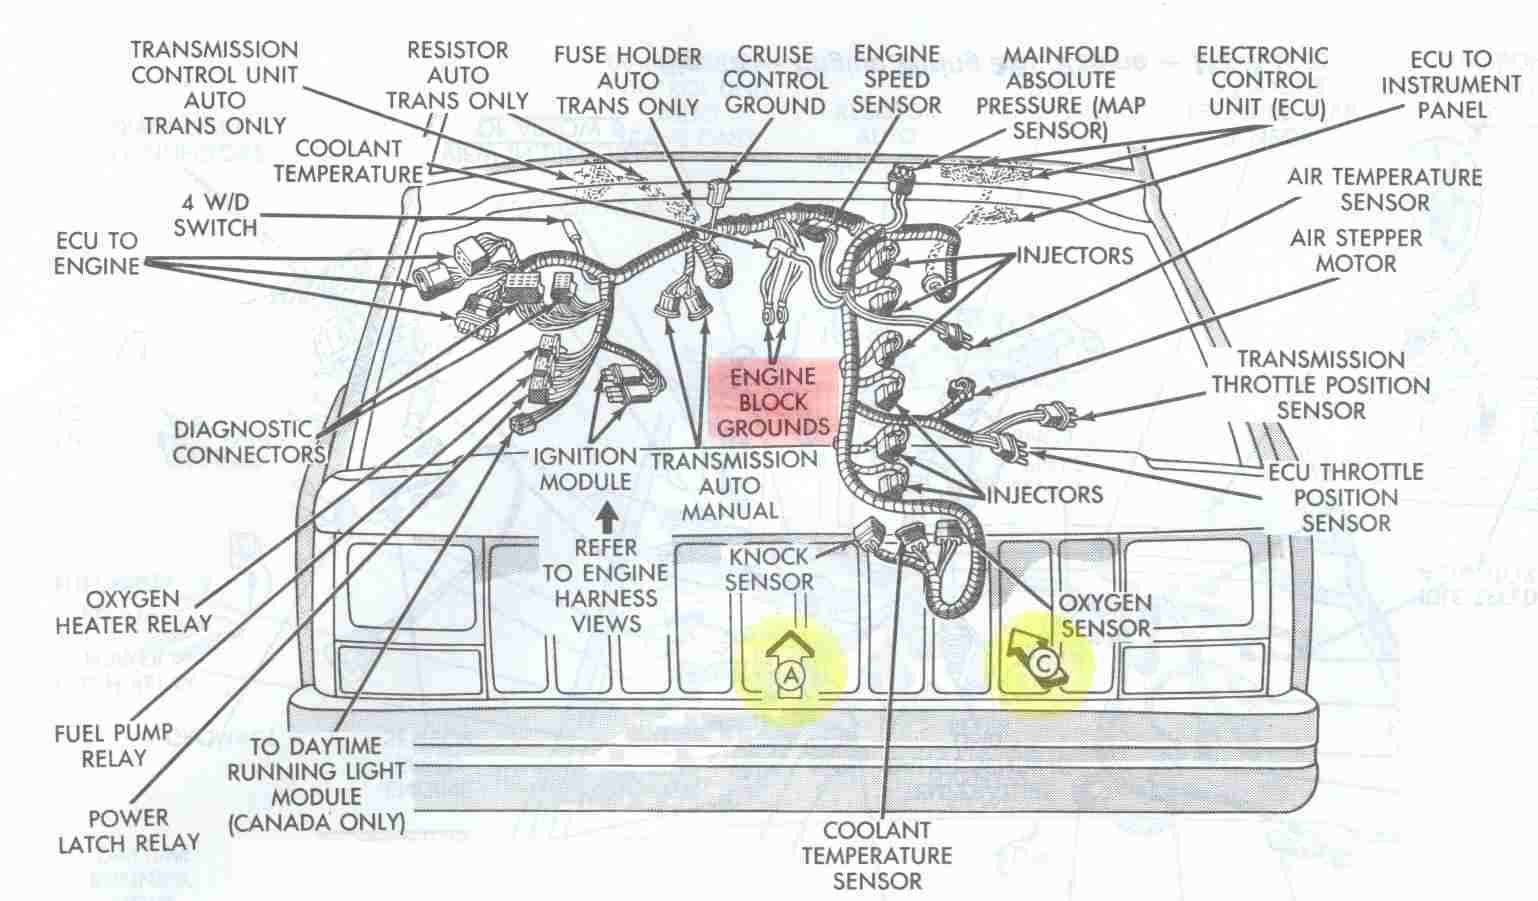 ab0134a7d9e021431187af597eb4aeca engine bay schematic showing major electrical ground points for wiring diagram for 1992 jeep cherokee at fashall.co